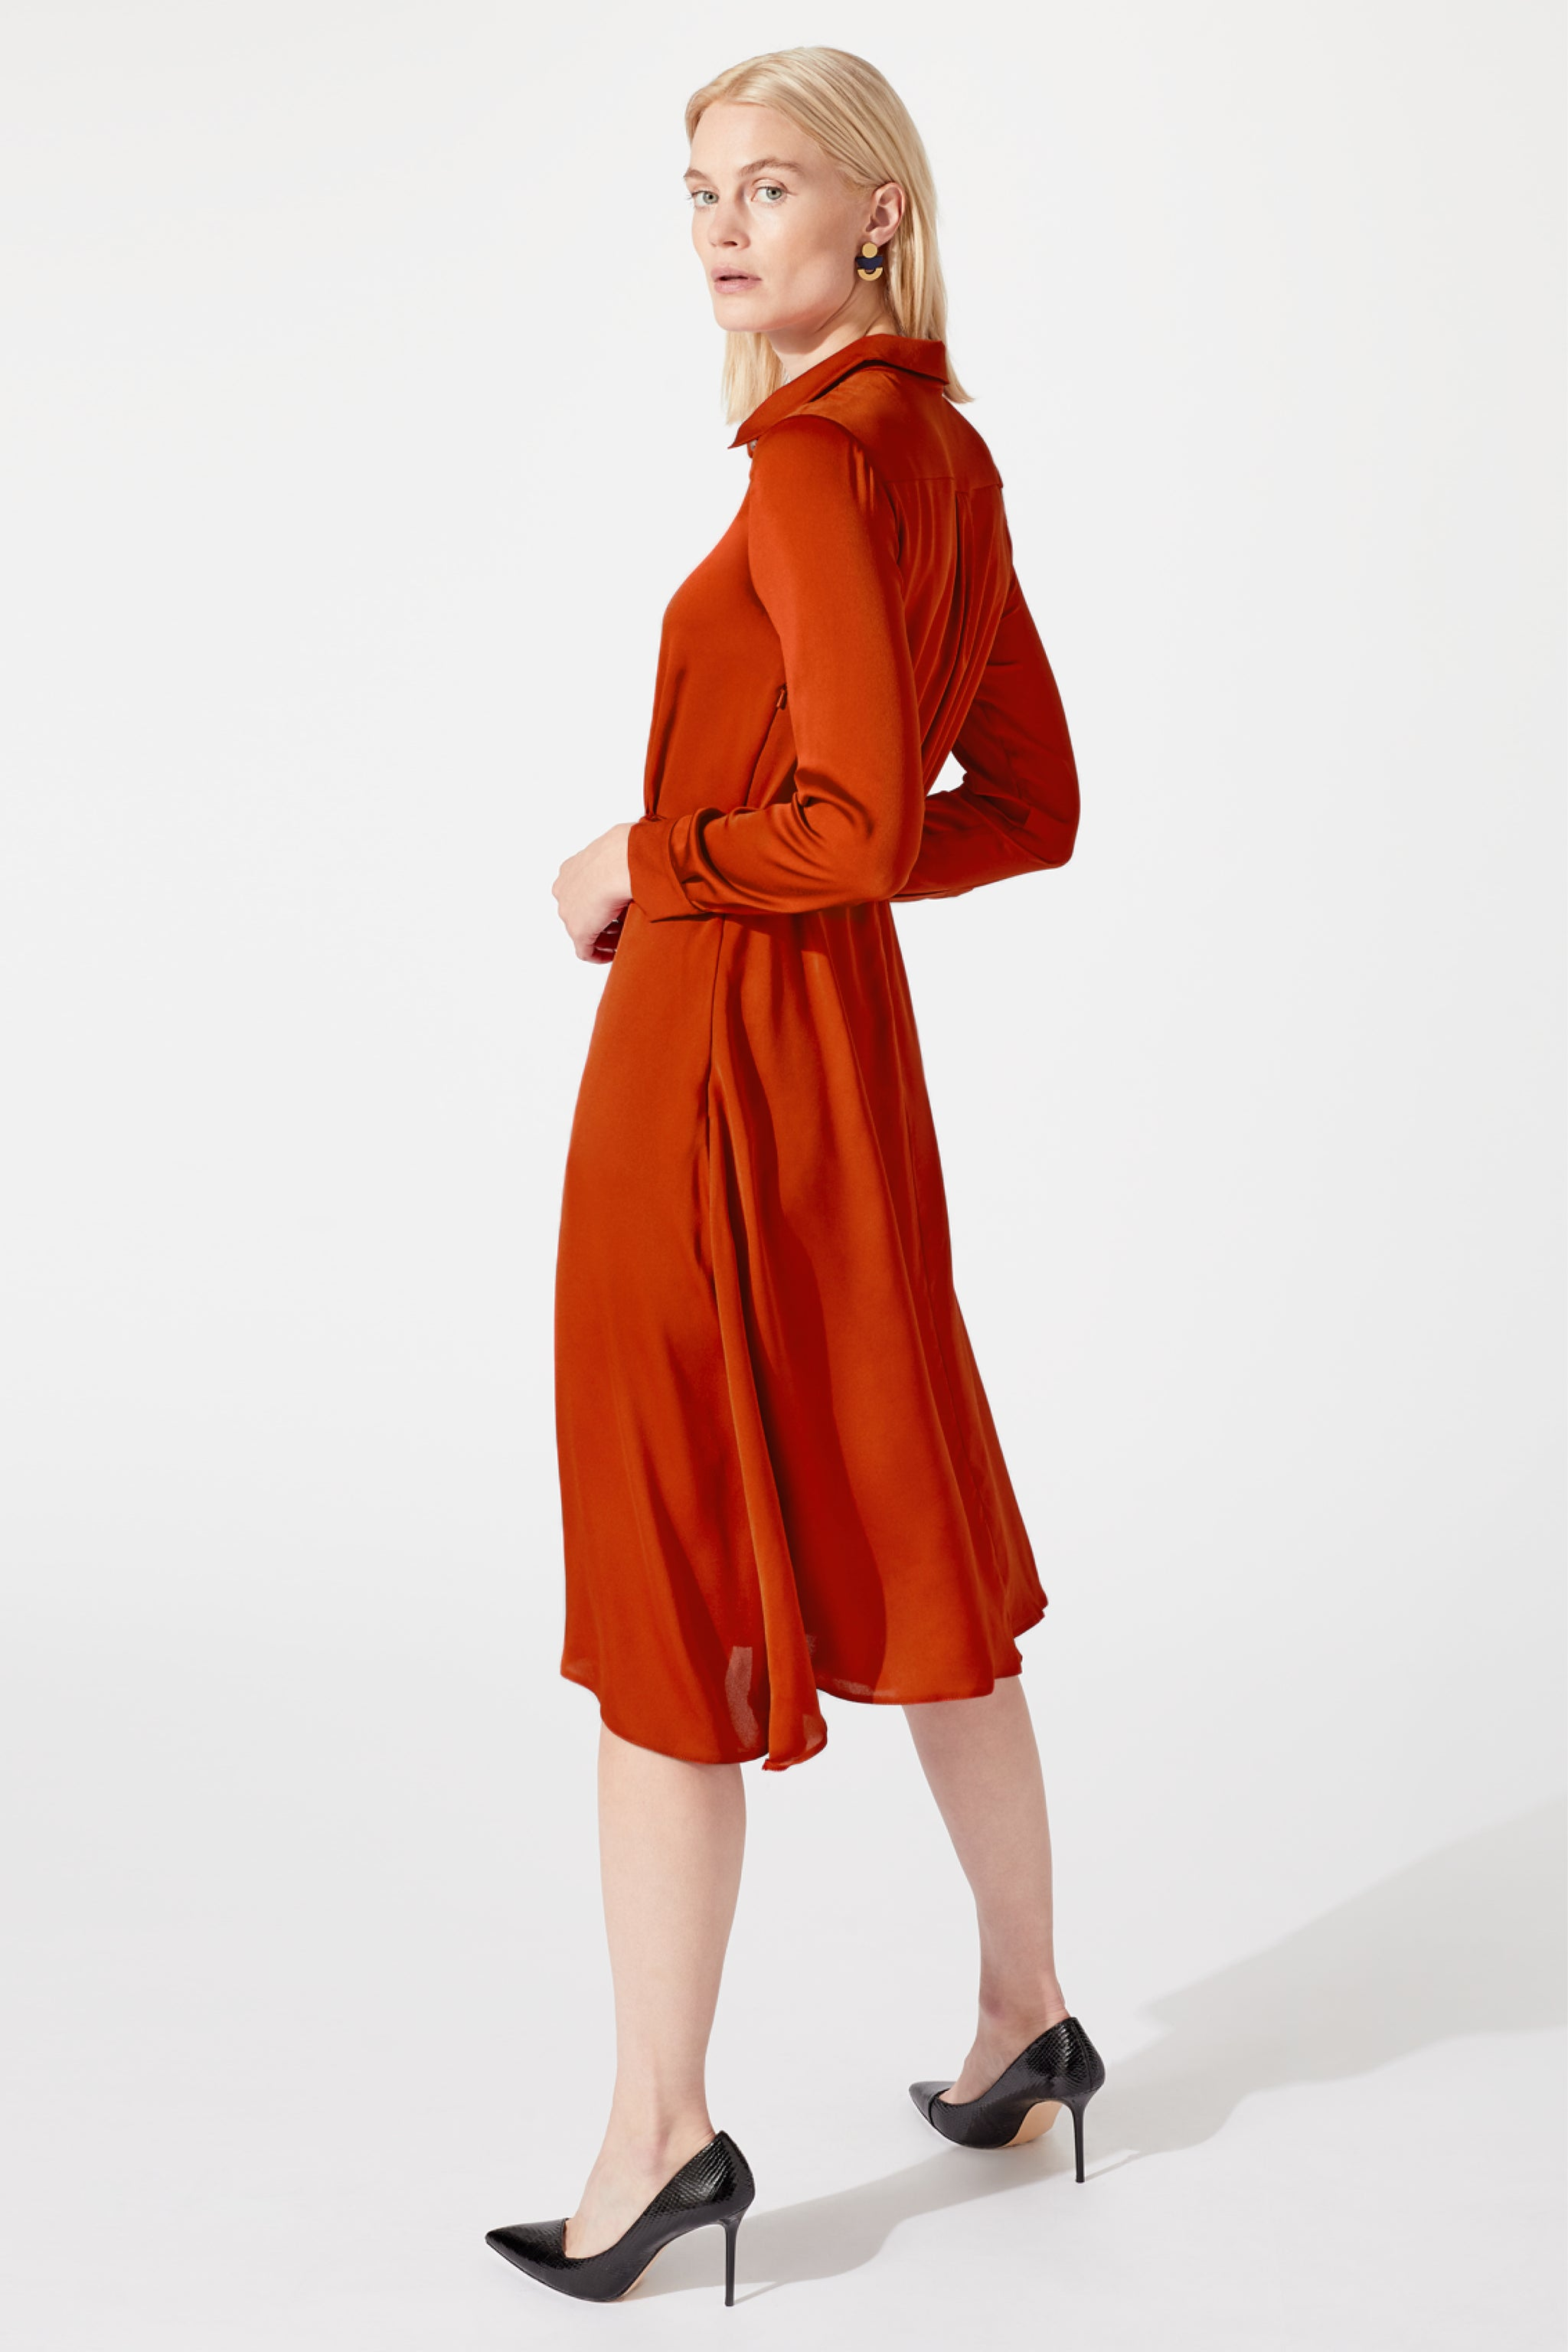 Exeter Terracotta Shirt Dress